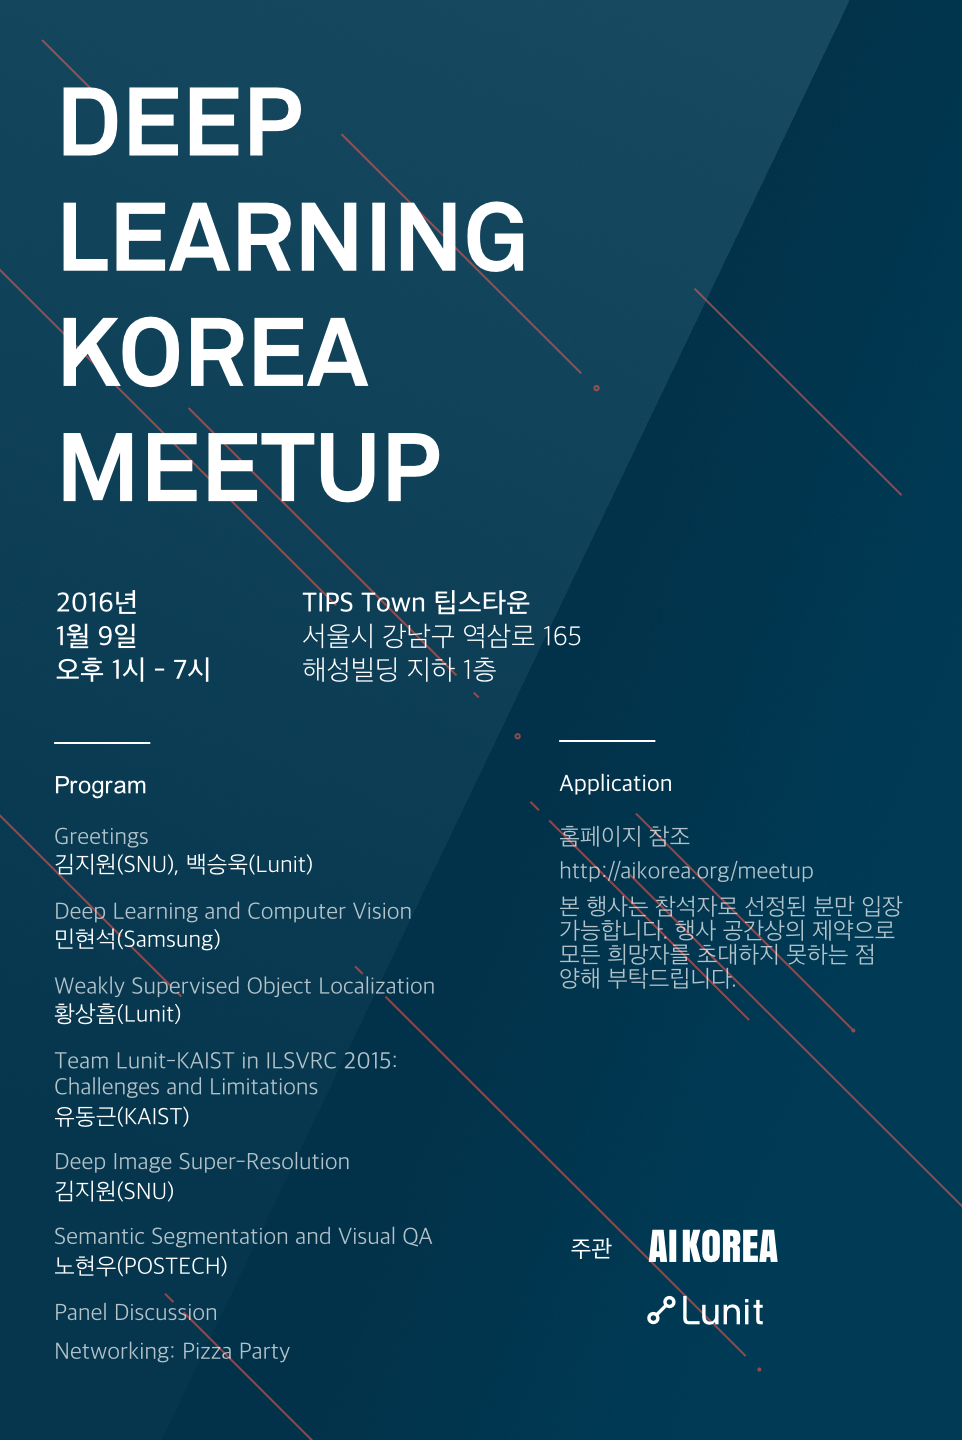 dl-korea-meetup-img1